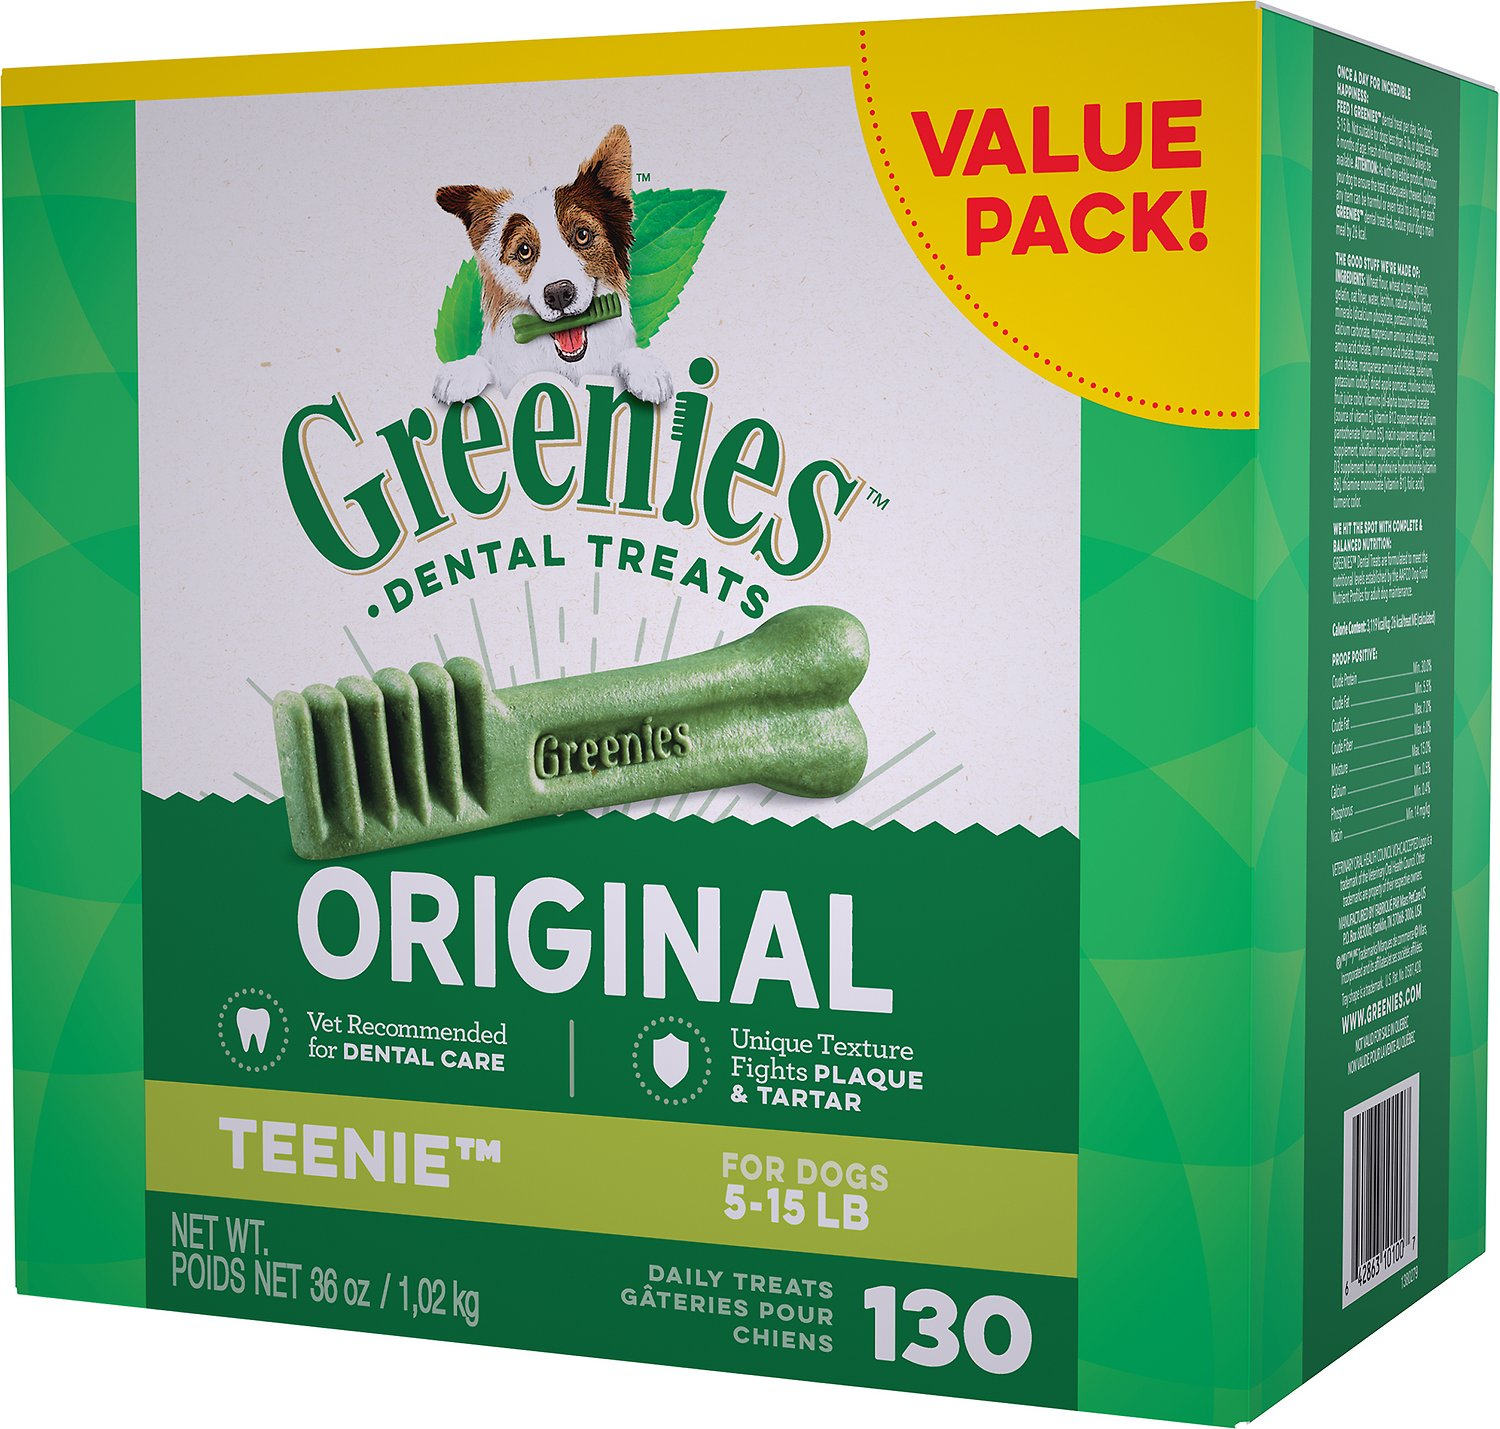 Greenies Original Teenie Dental Dog Treats, 130-count (Size: 130-count) Image